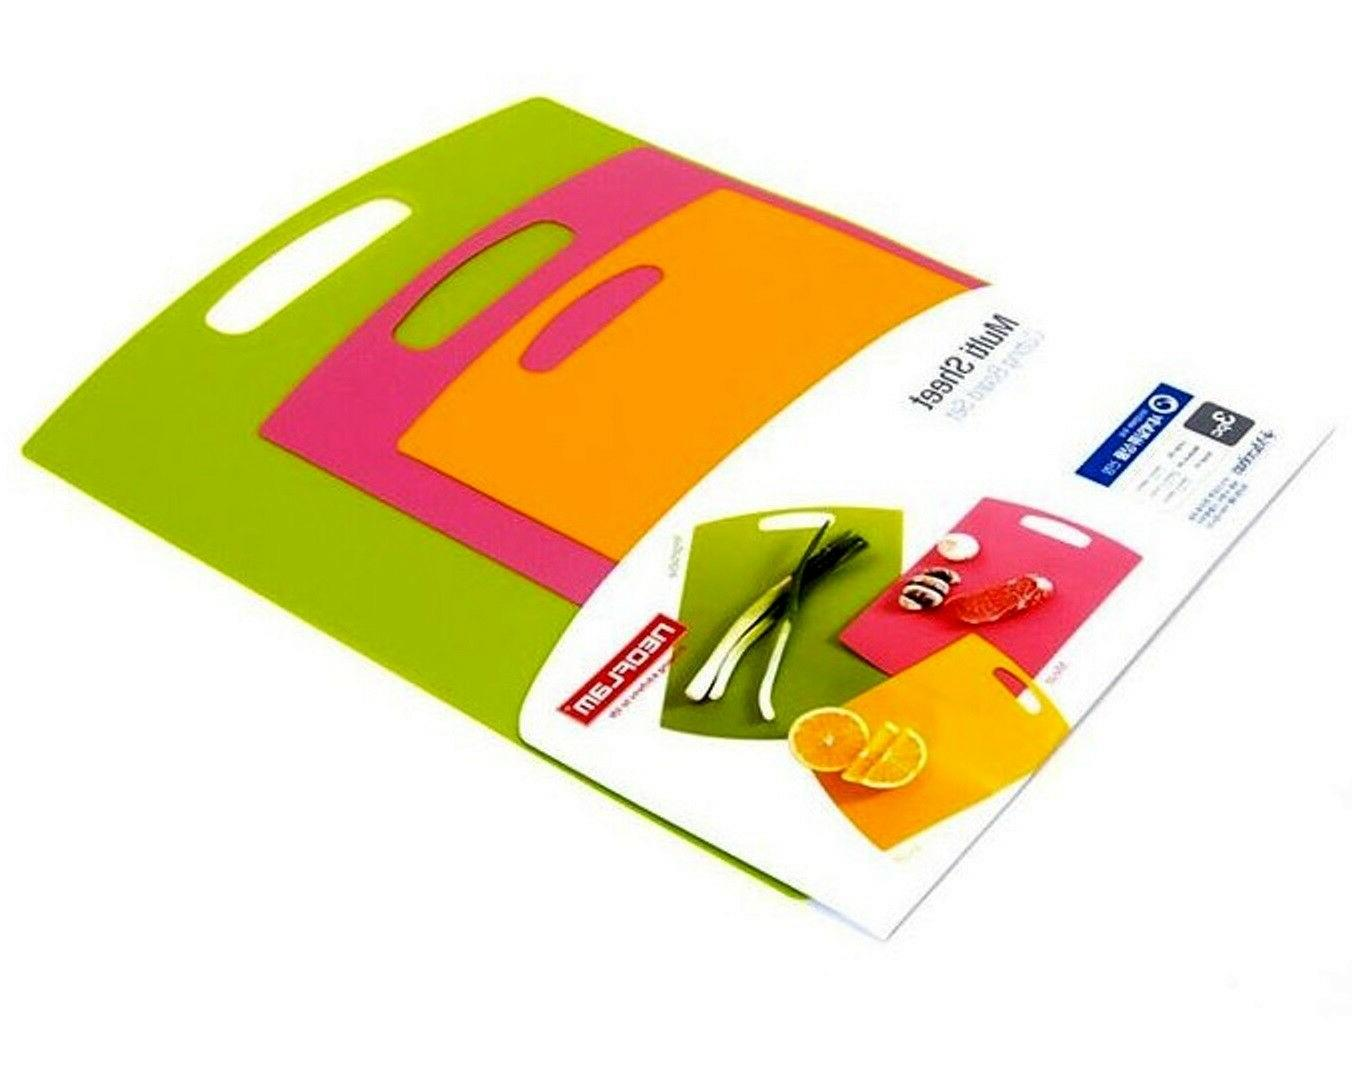 3p flexible cutting board mats multi sheet